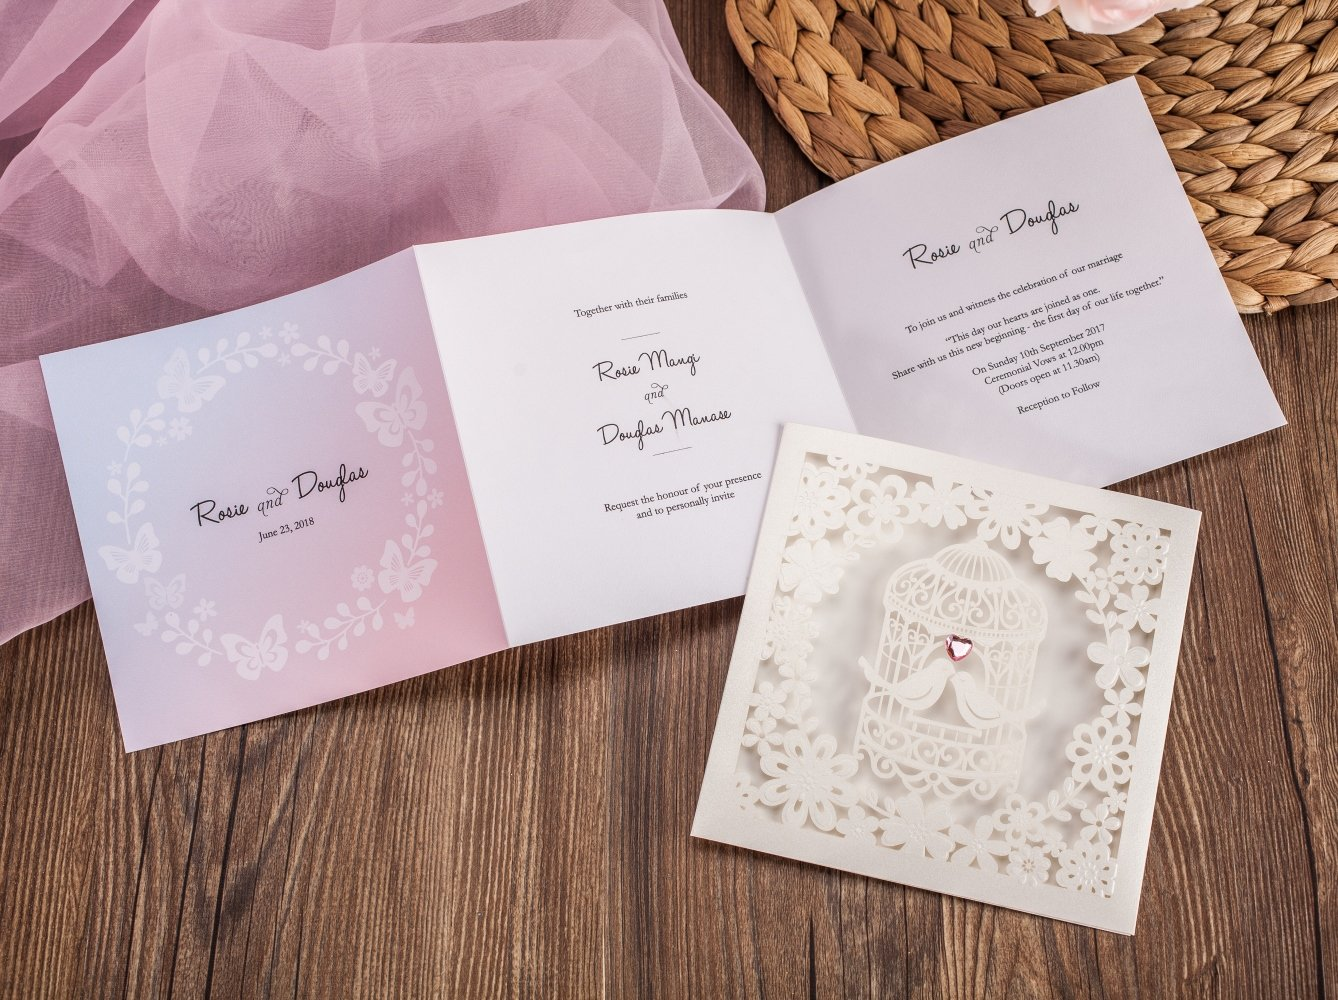 Wishmade 100x Laser Cut Love Bird Heart Wedding Invitations Cards With Matched RSVP and Thank You Card CW6113 by Wishmade